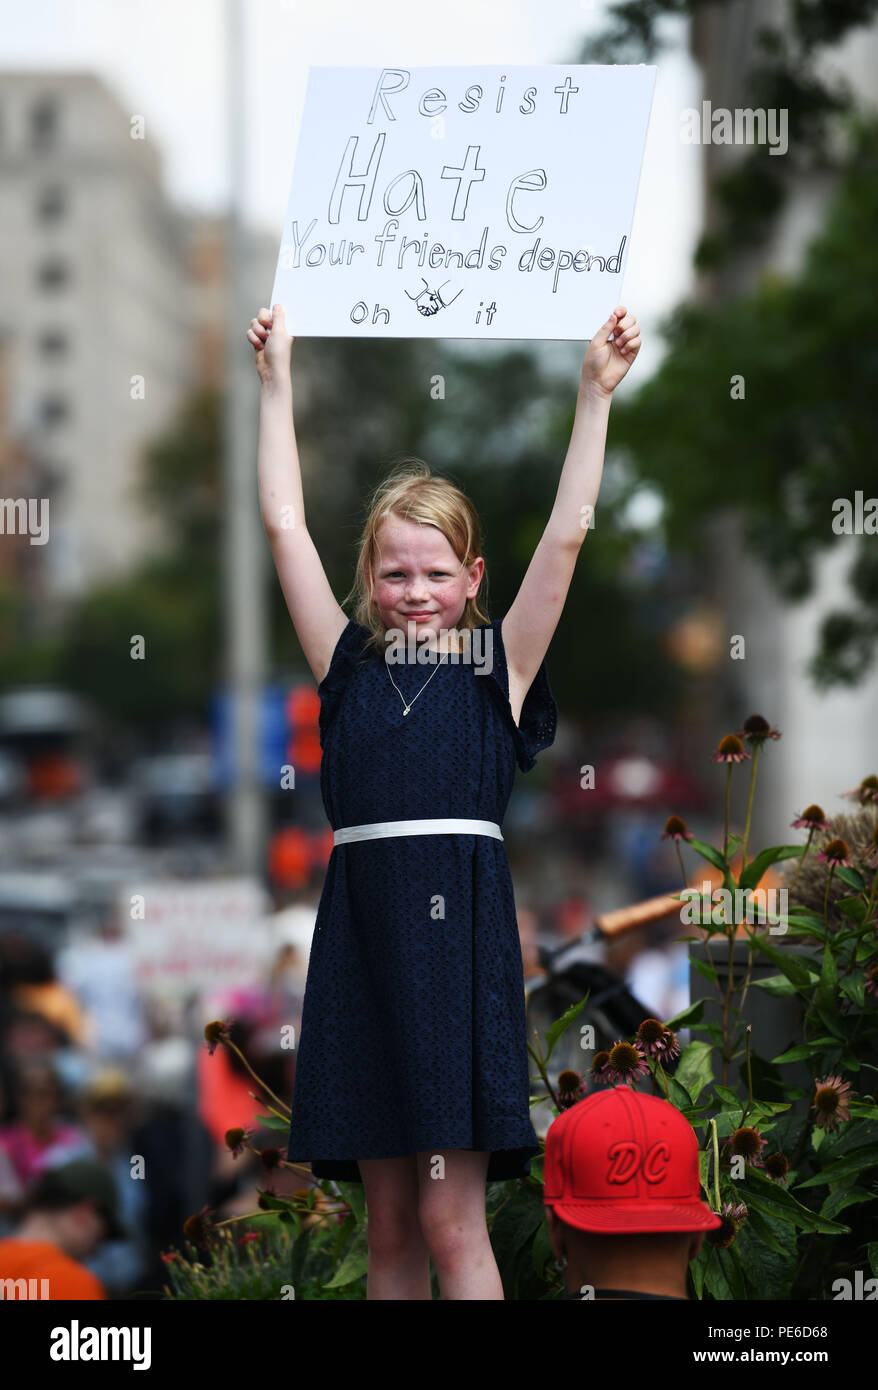 Washington, USA  12th Aug, 2018  A girl holds a poster at the